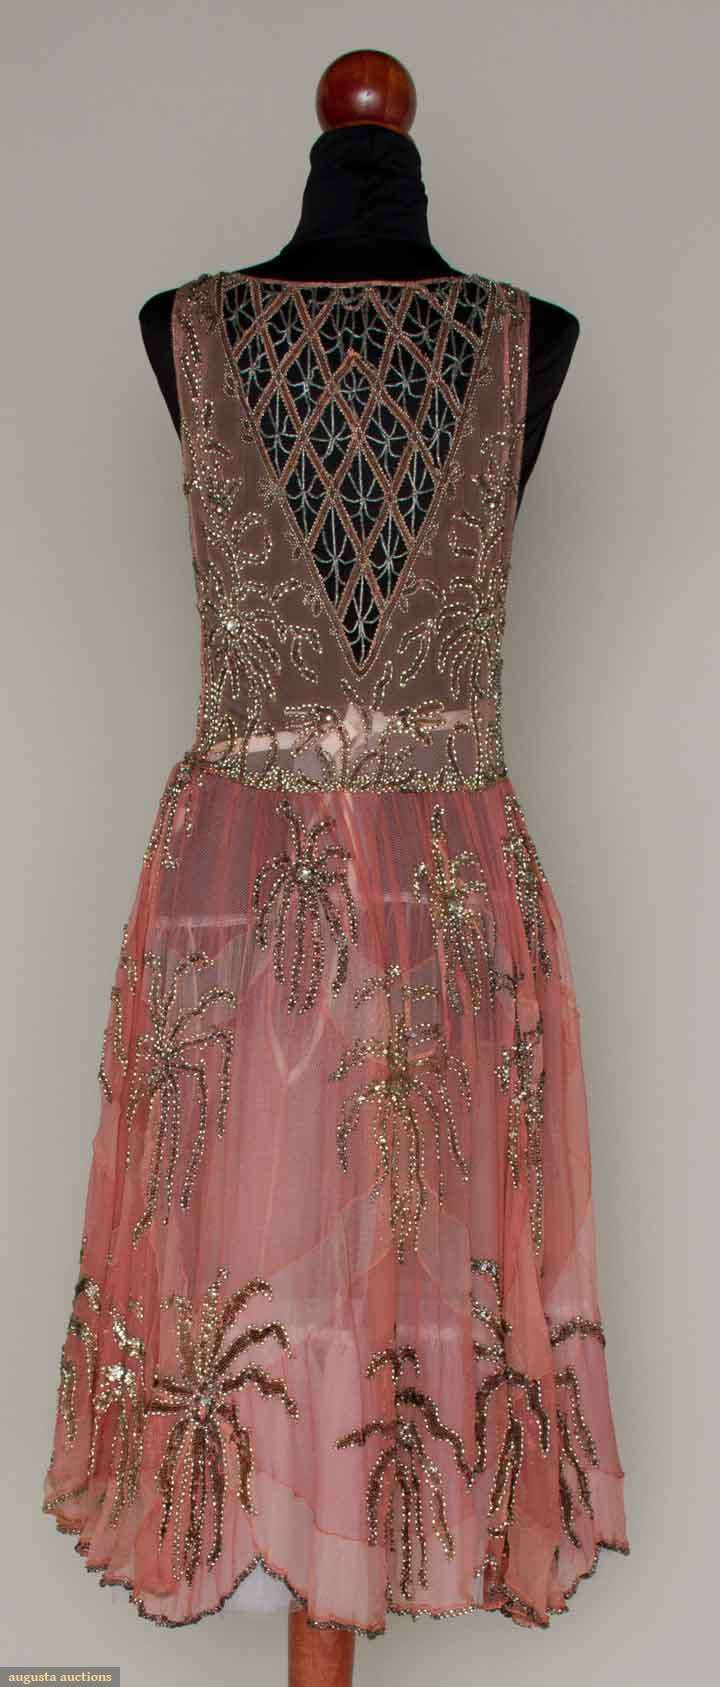 PINK & SILVER BEADED PARTY DRESS, MID 1920s